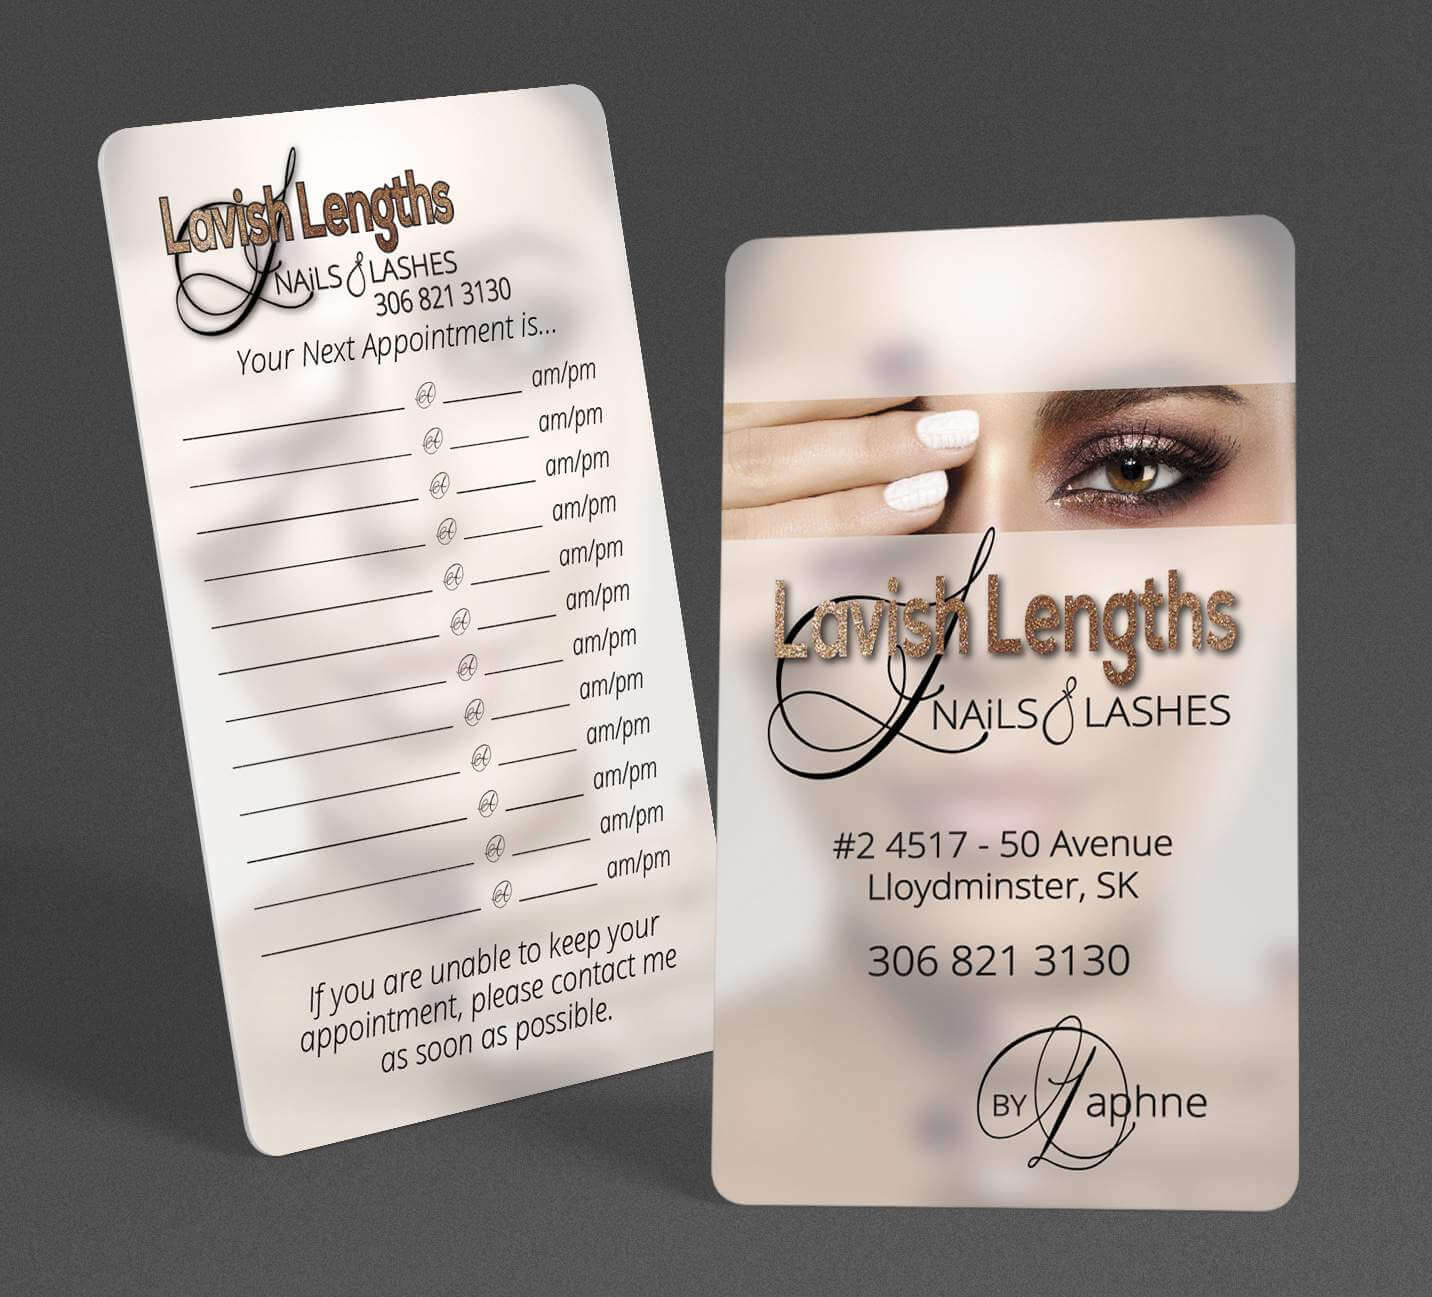 Lavish Lengths Nails & Lashes Business Cards with appointments